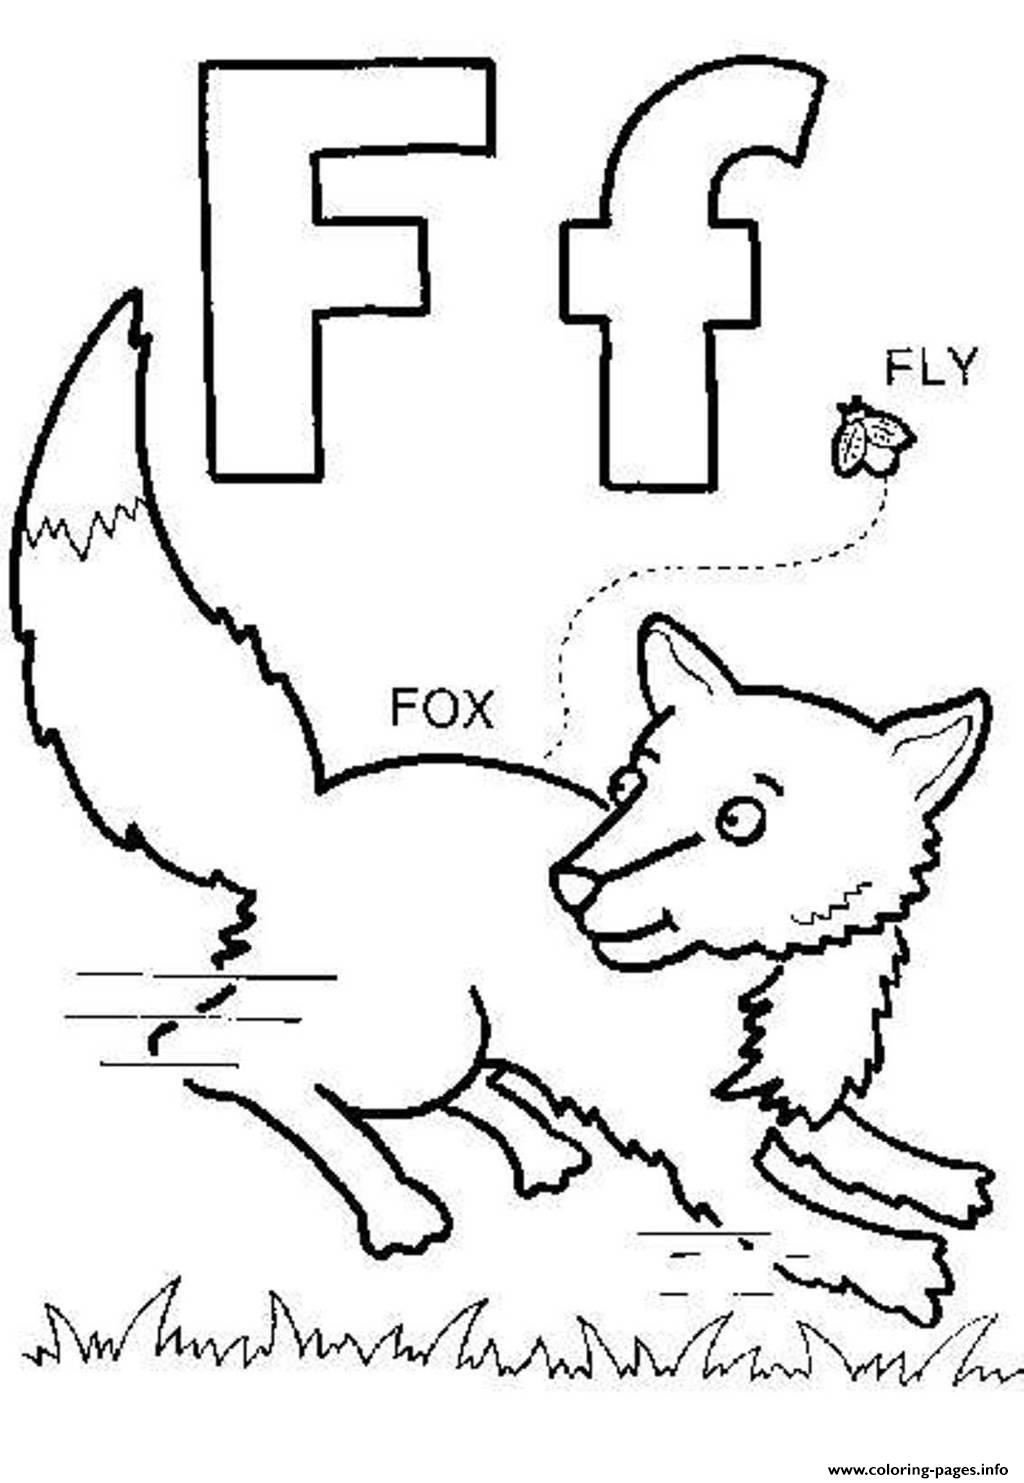 Fox And Fly Free Alphabet Scbf0